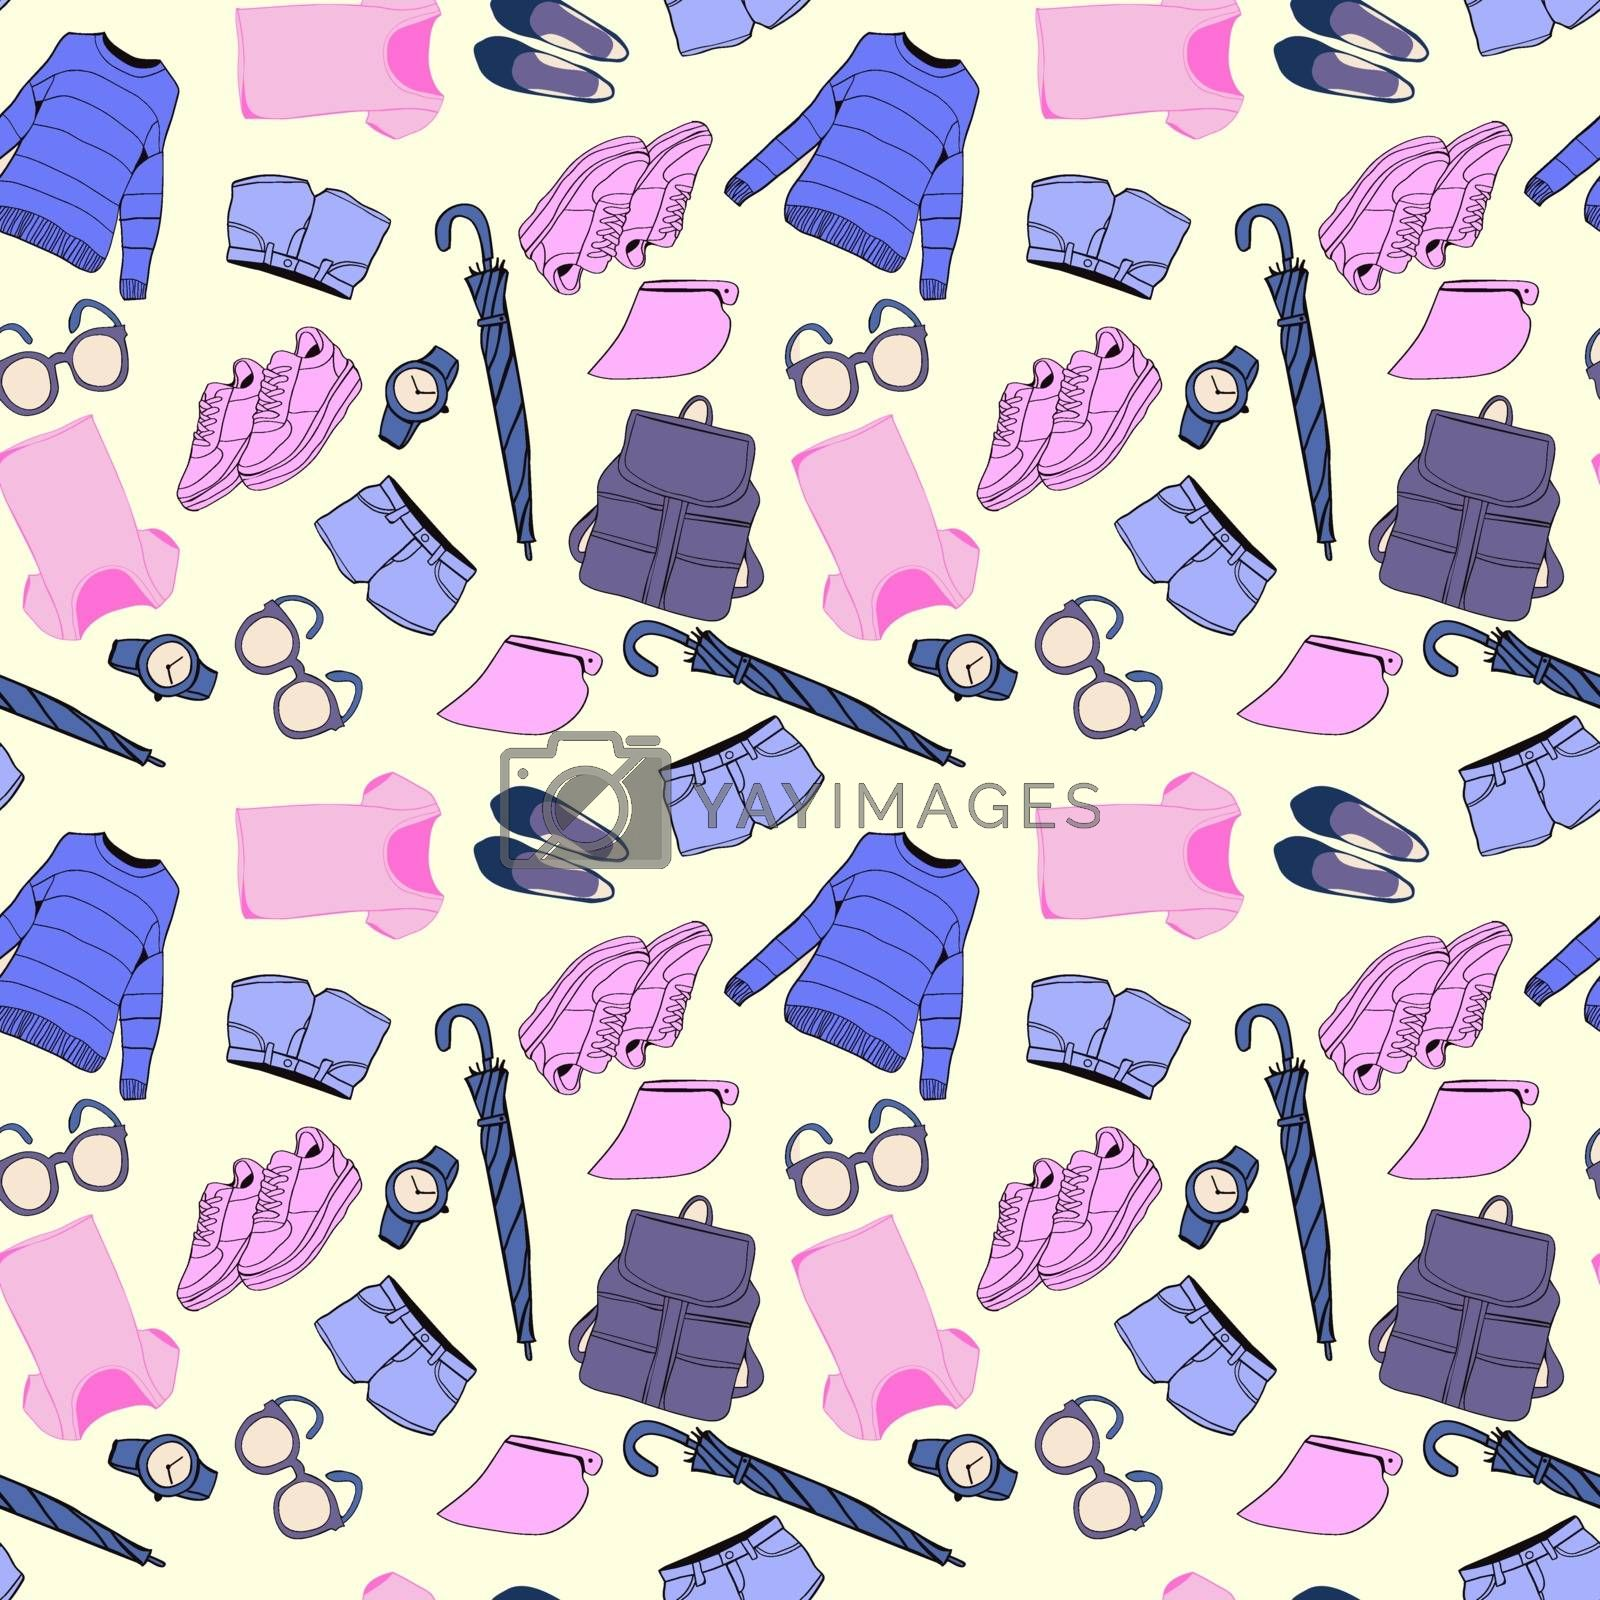 Background of summer outfit collection. Vector of hand drawn fashion clothes and accessories pattern illustration